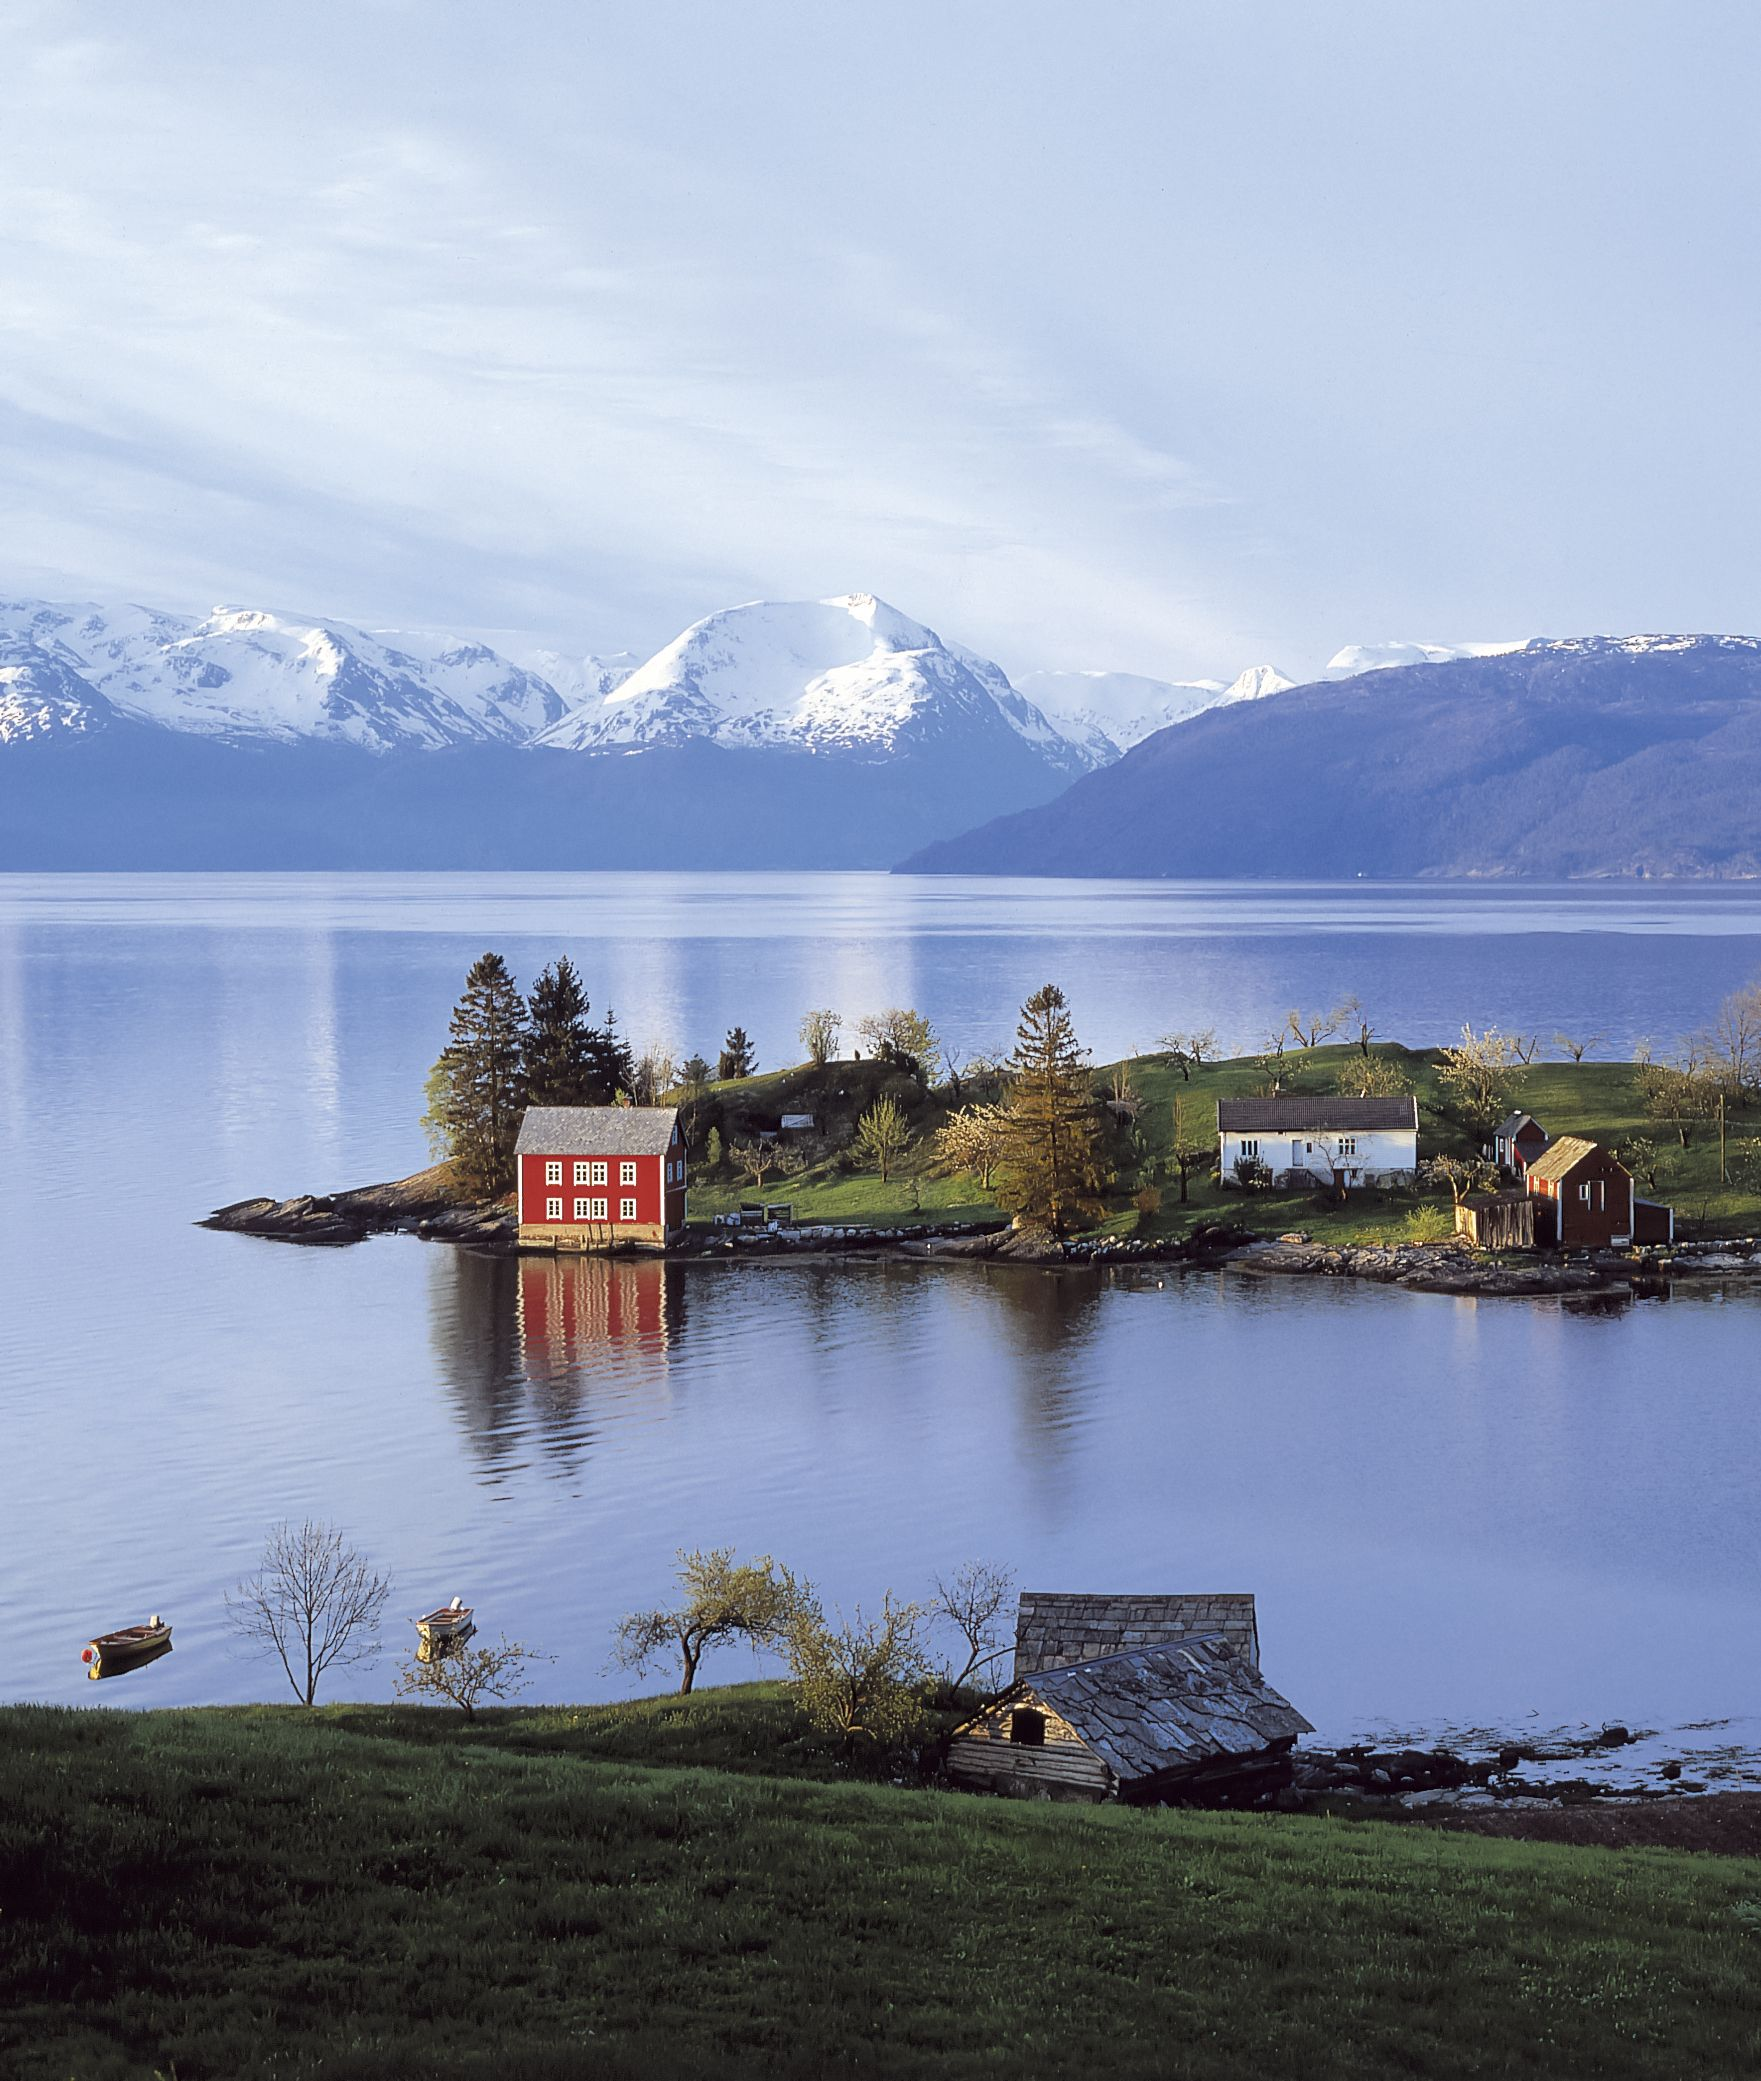 Omaholmen island in the Hardangerfjord, Norway